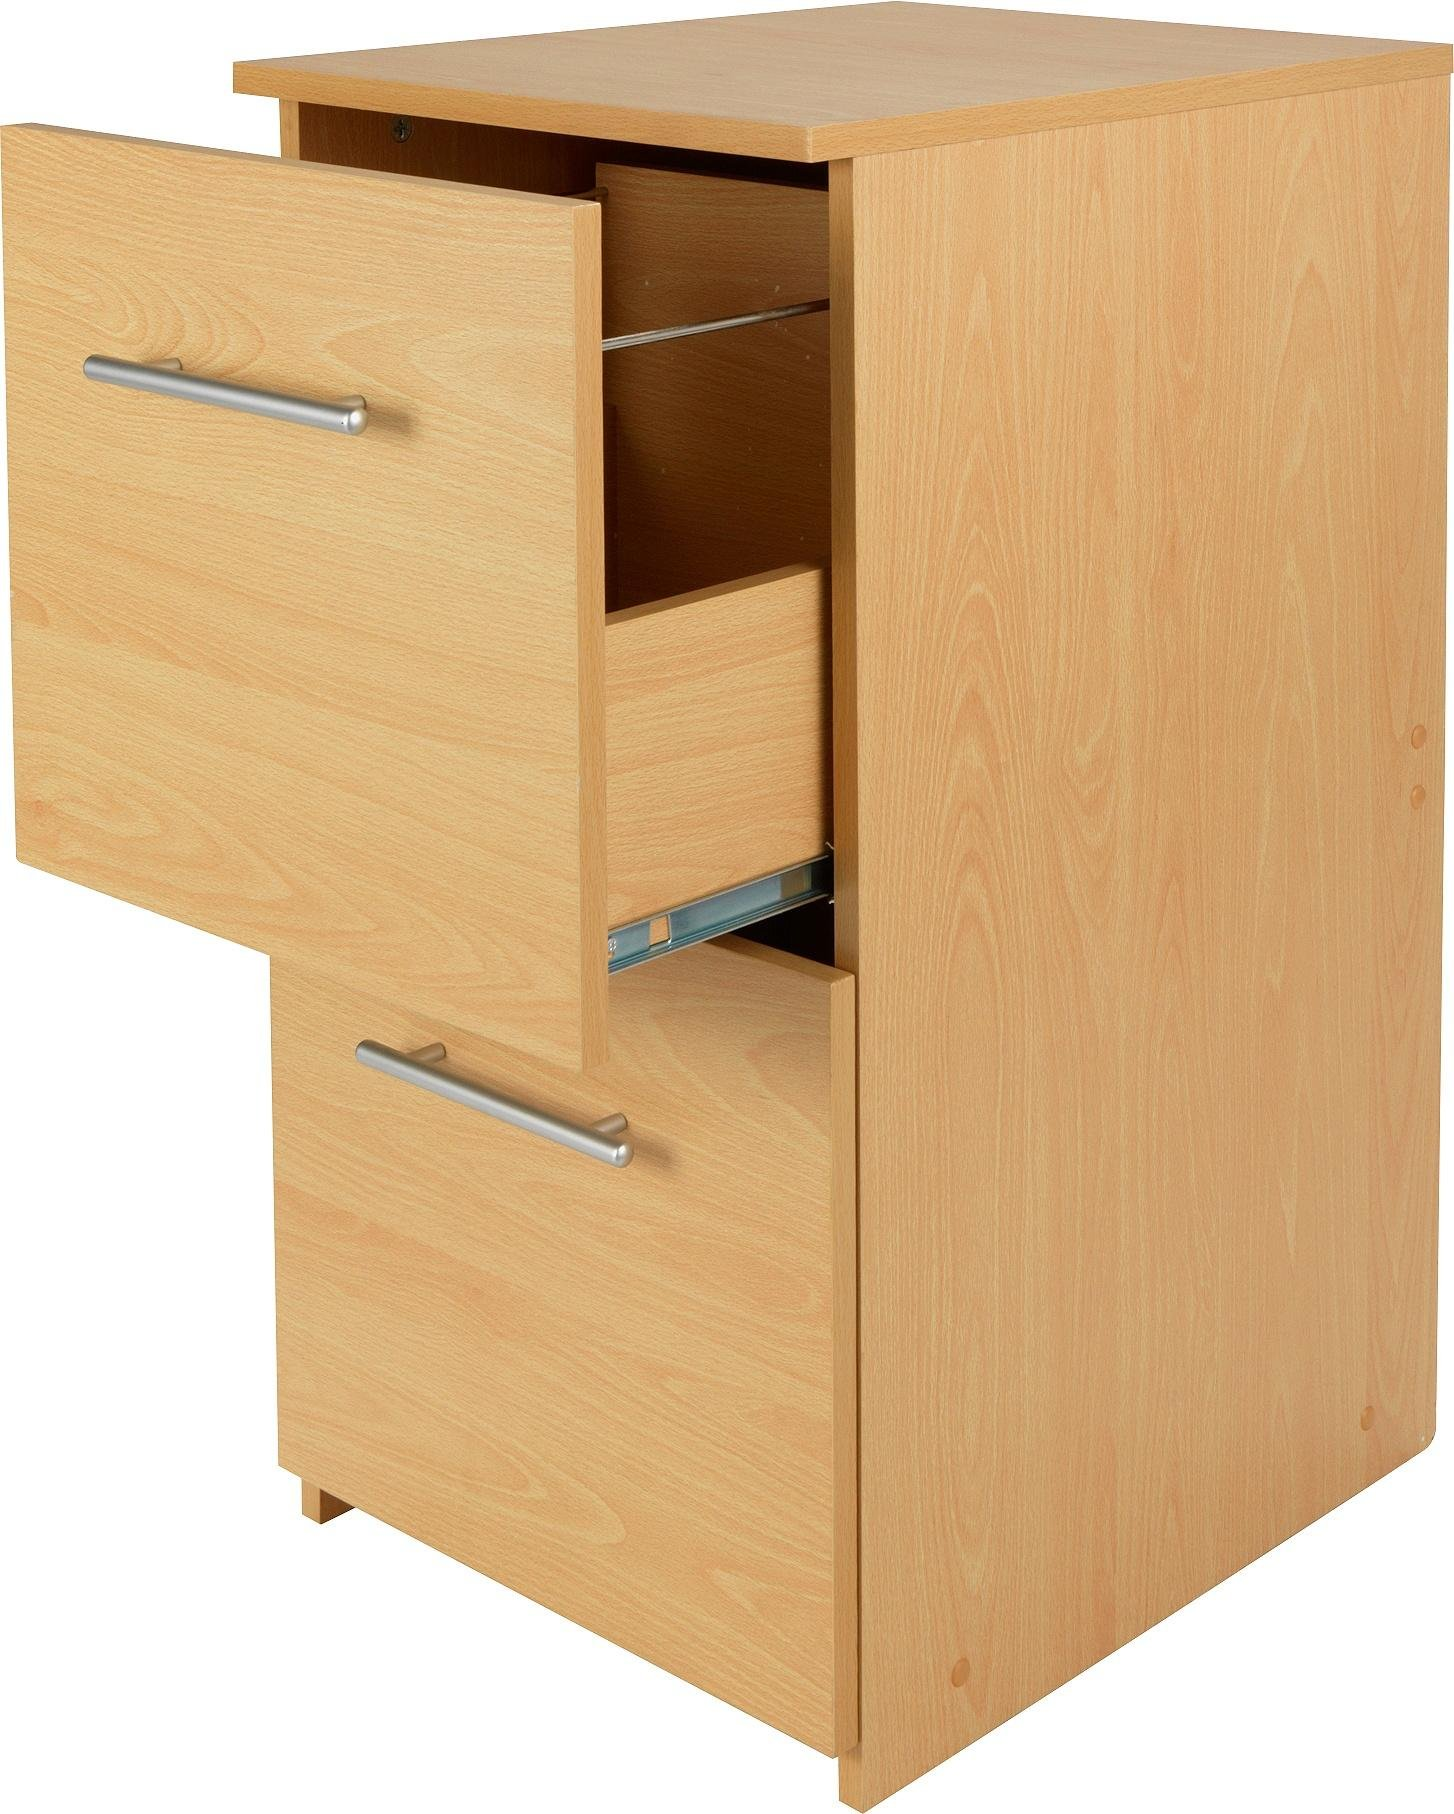 buy home 2 drawer filing cabinet - beech effect at argos.co.uk